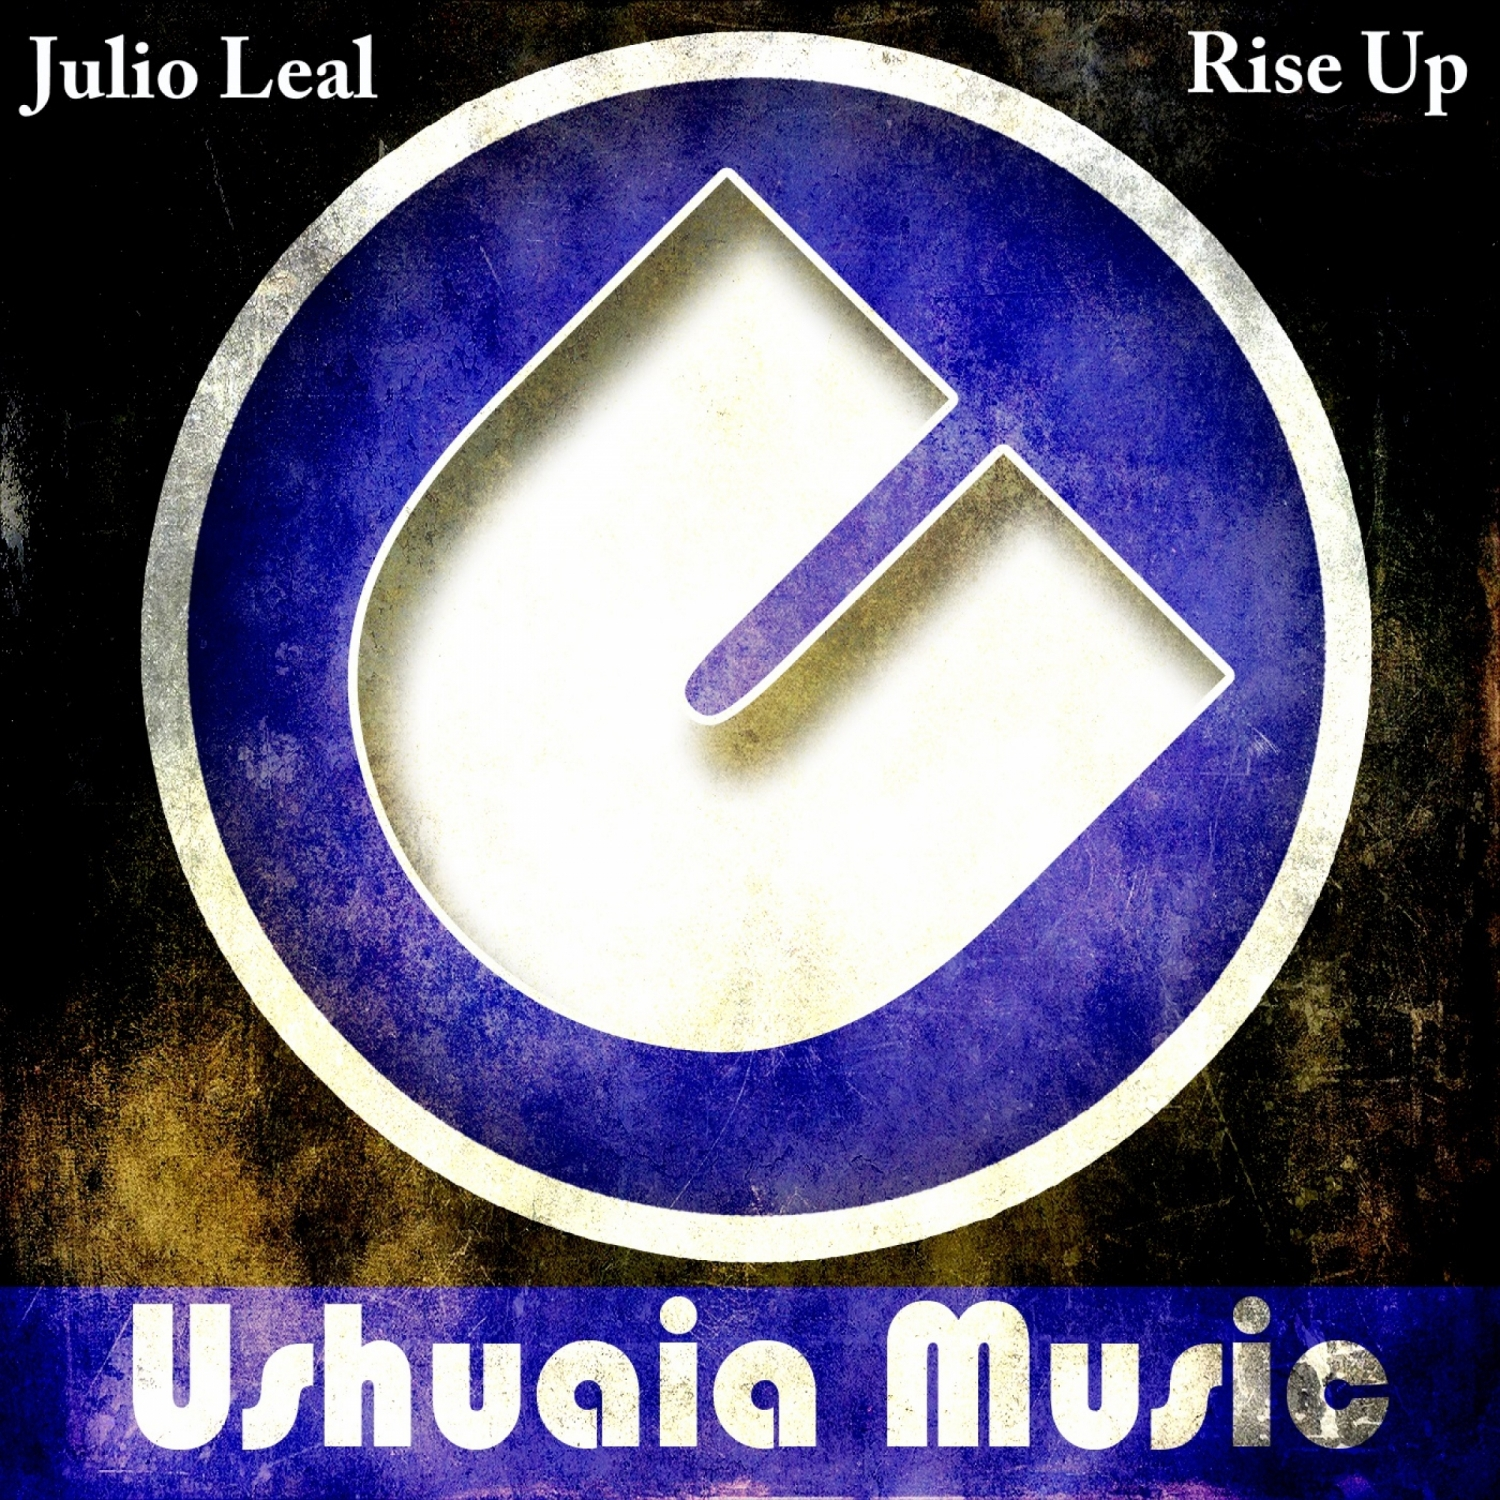 Julio Leal - Rise Up (Original Mix)